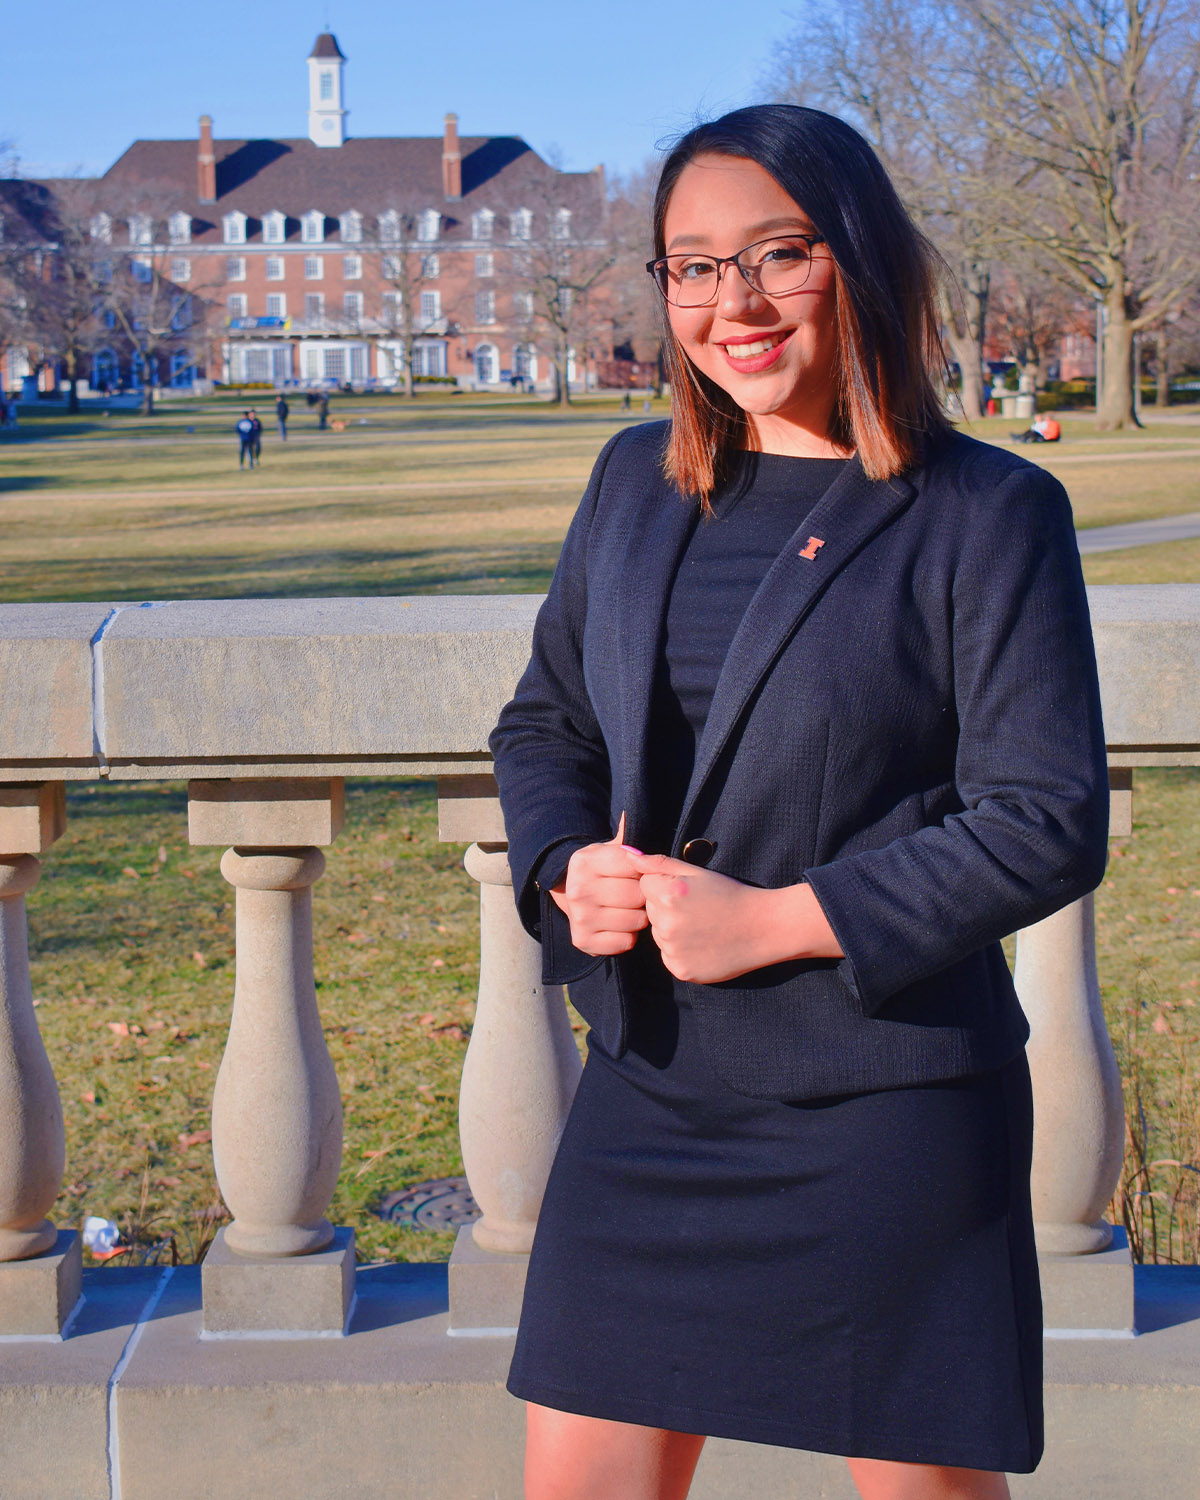 Alexis posing for a campaign photo on the quad.